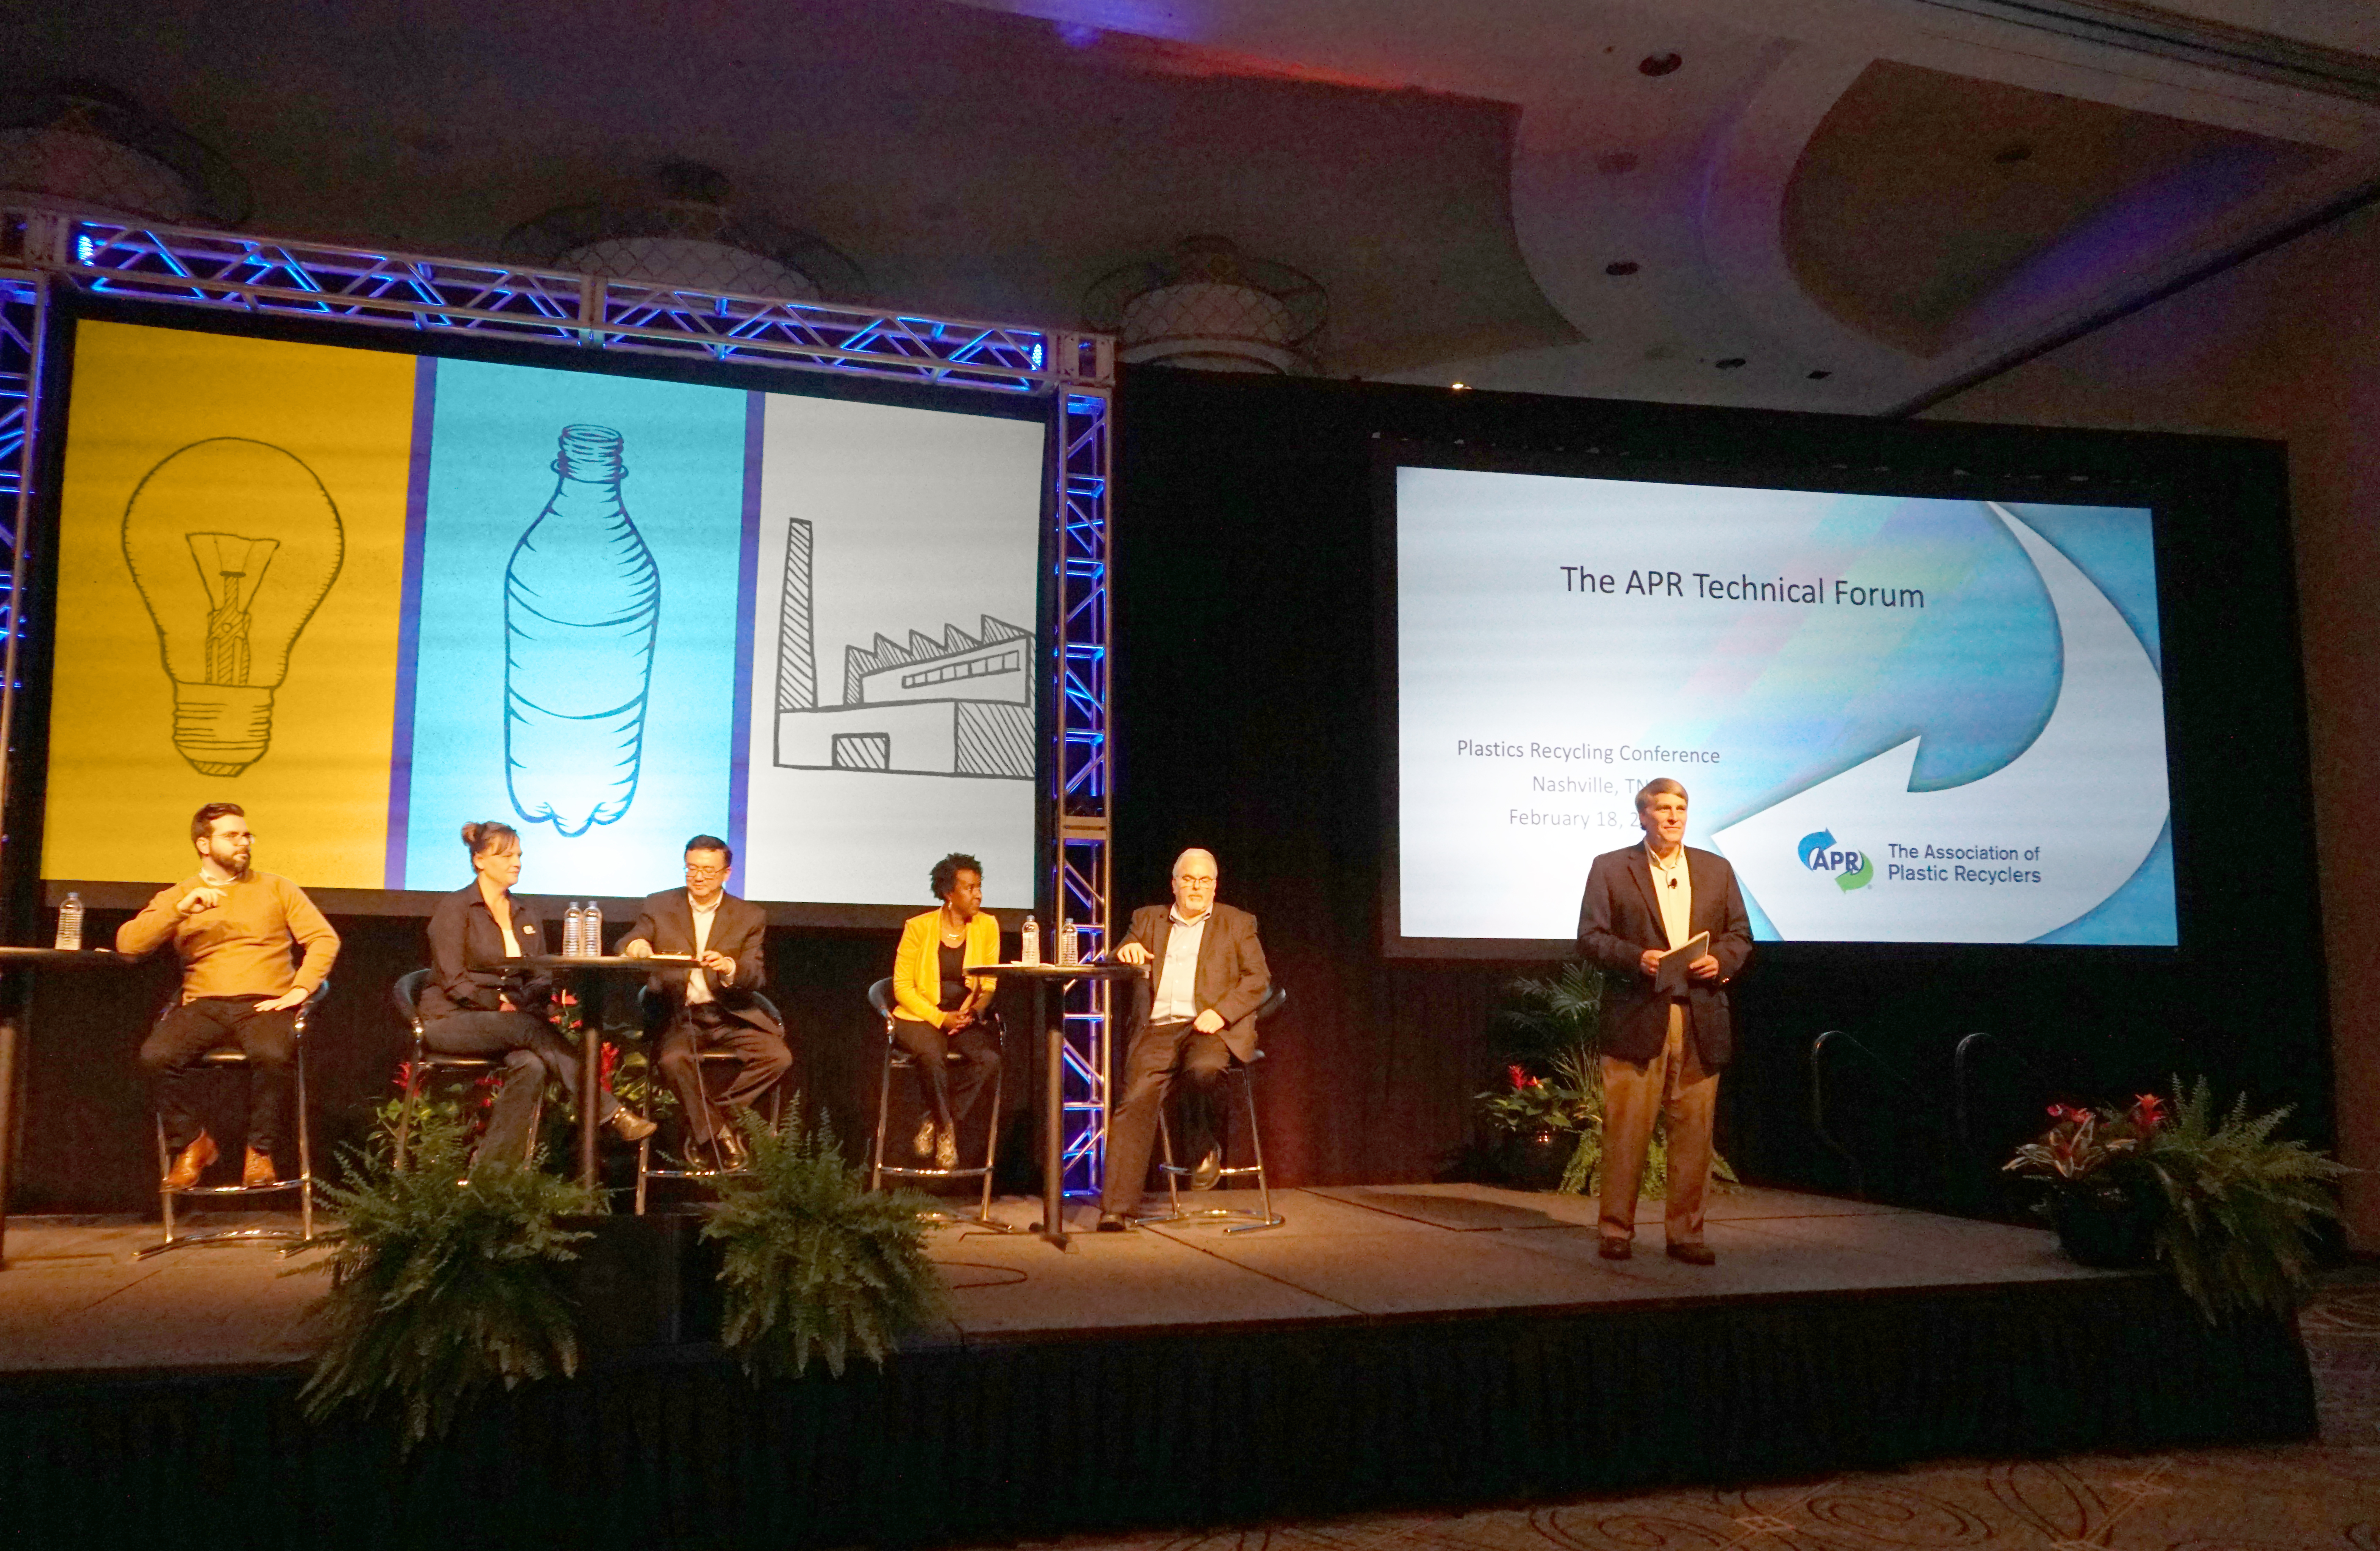 2020 Plastics Recycling Showcase recipicents on stage with APR's Technical Director, John Standish